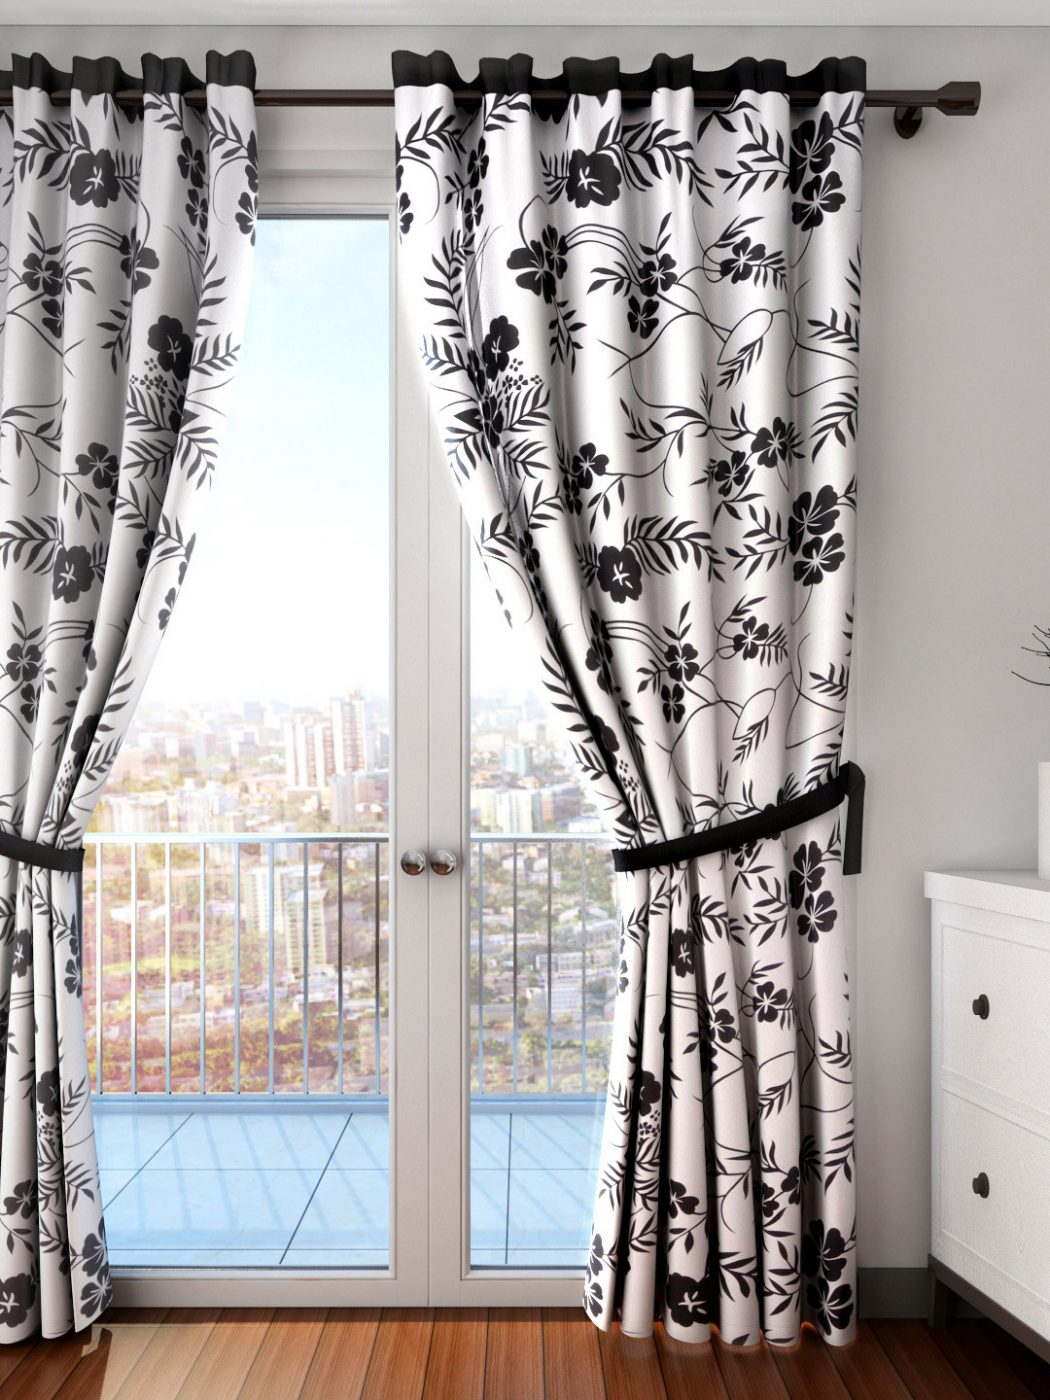 11465451719574-SWAYAM-White-Black-Single-Floral-Print-Long-Door-Curtain-7831465451719436-1 20+ Hottest Curtain Designs for 2019